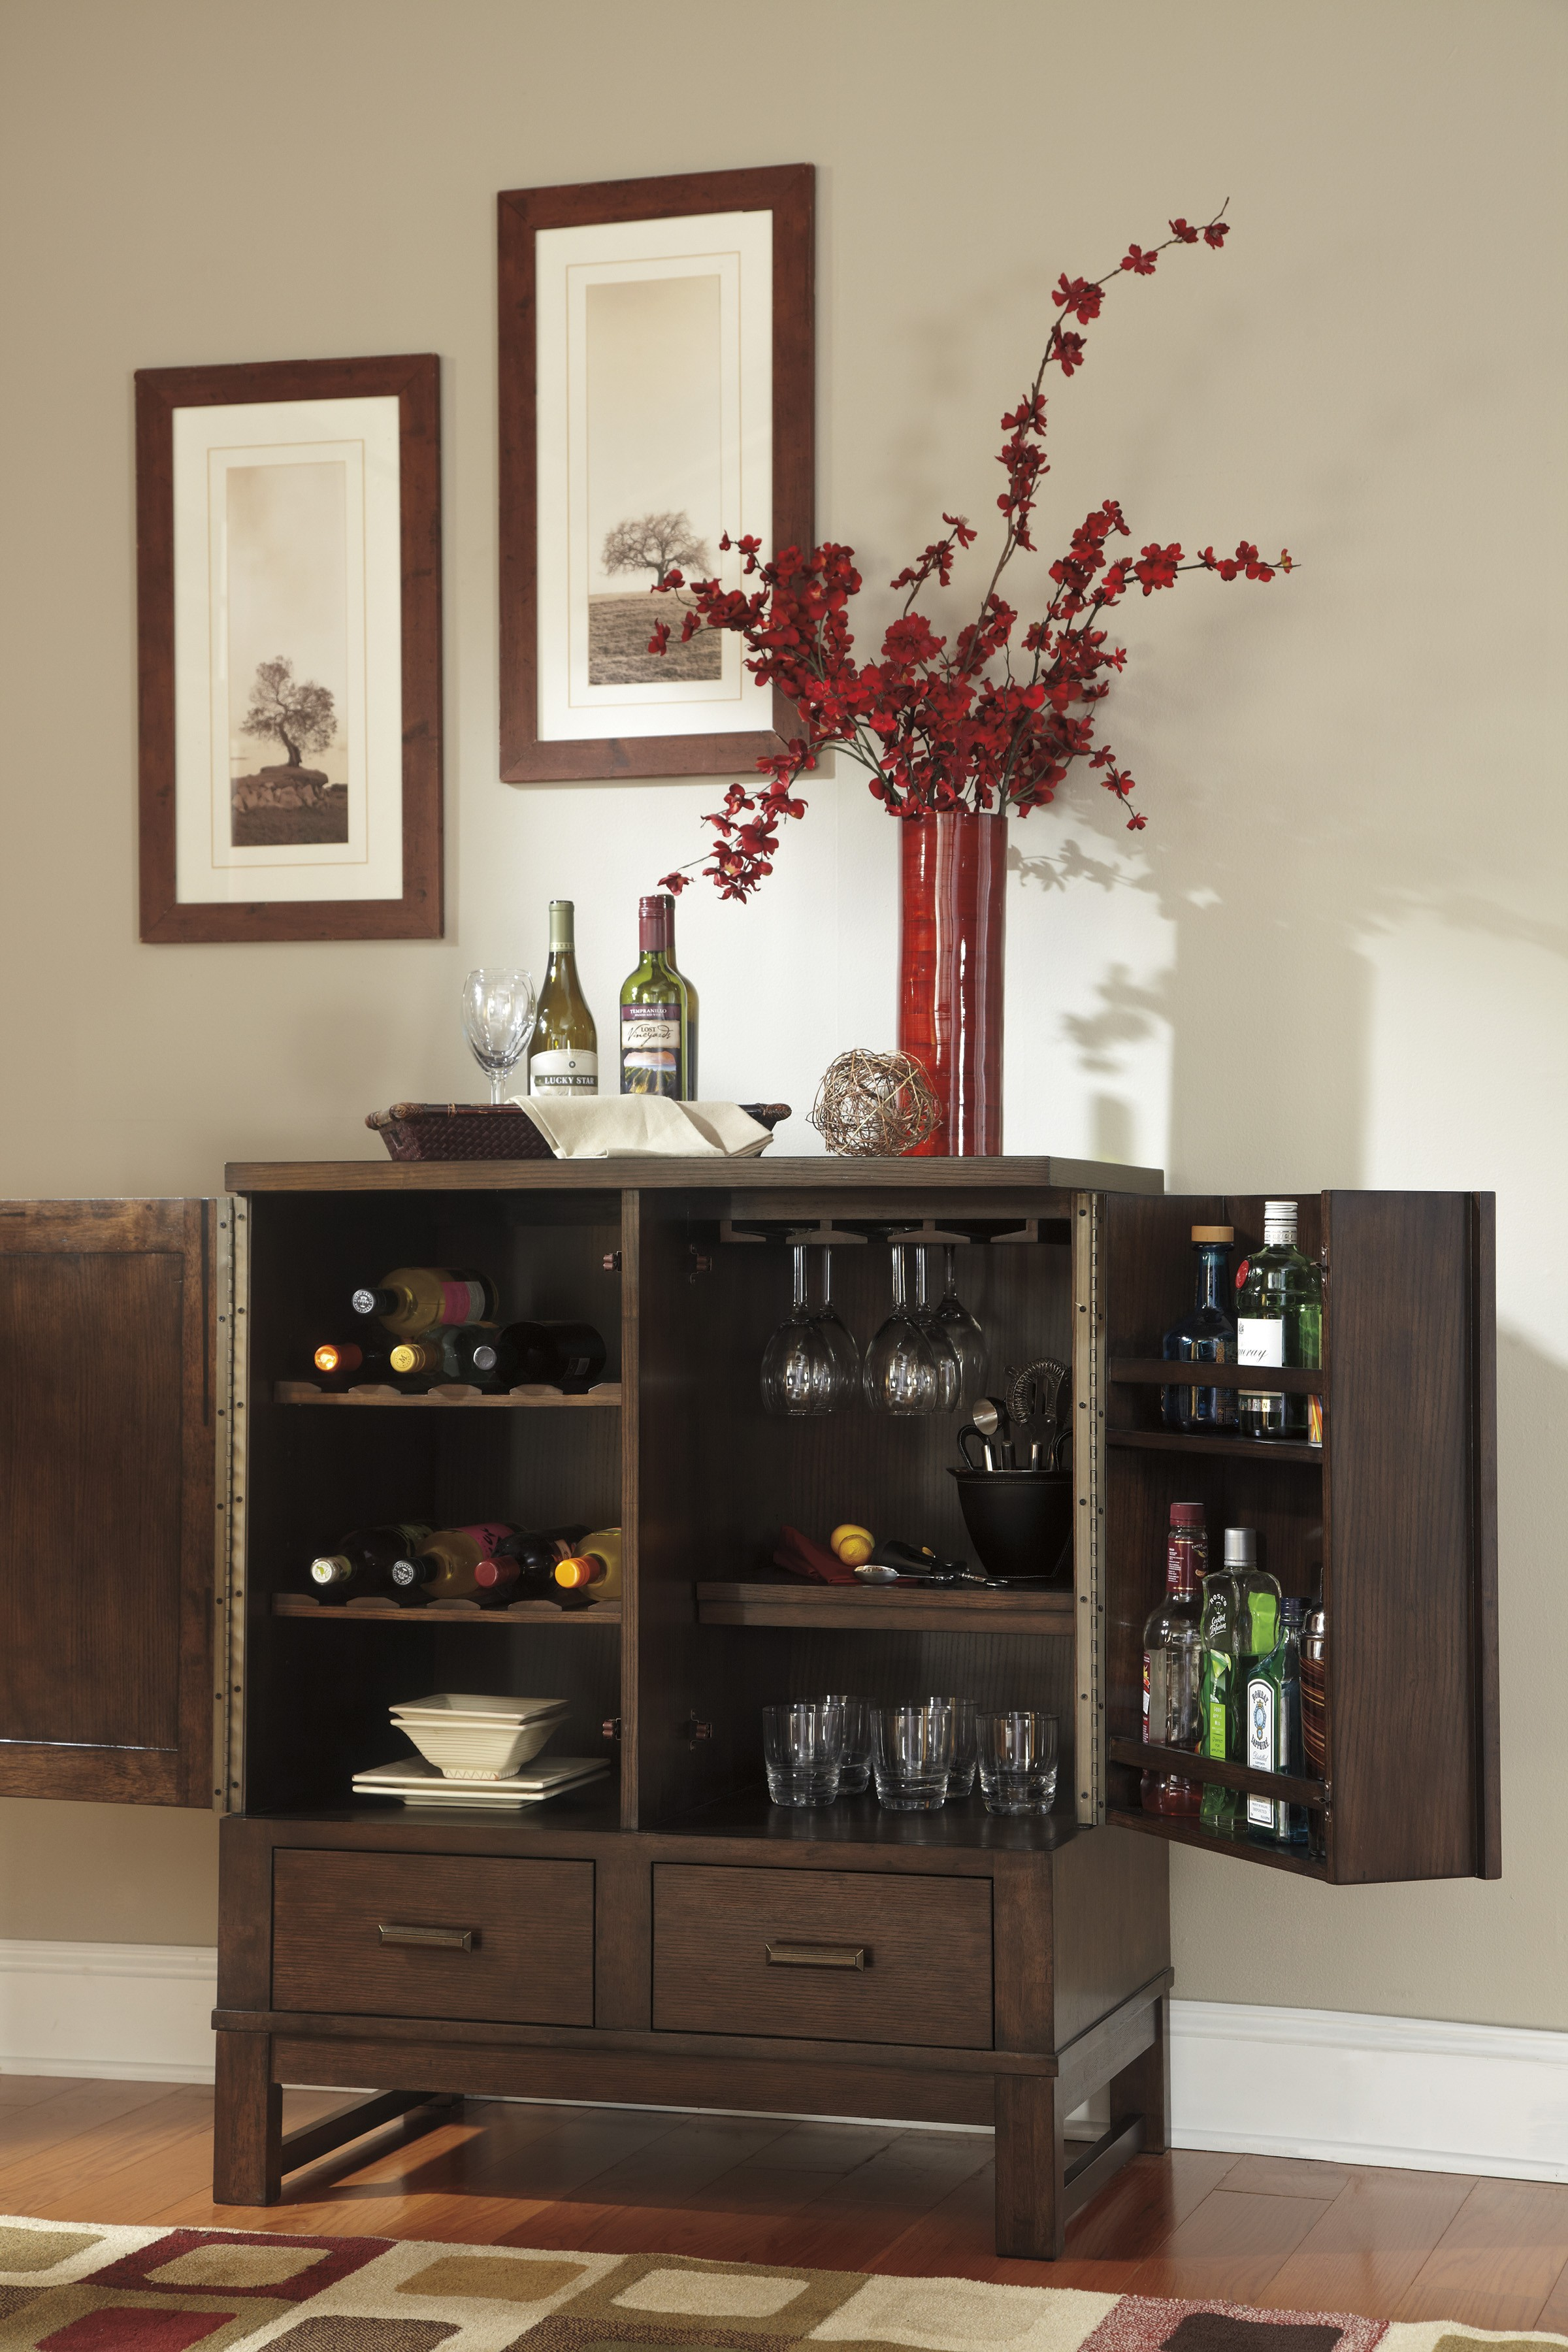 Genial Dining Room Servers You Can Look Console Buffet Table You ...